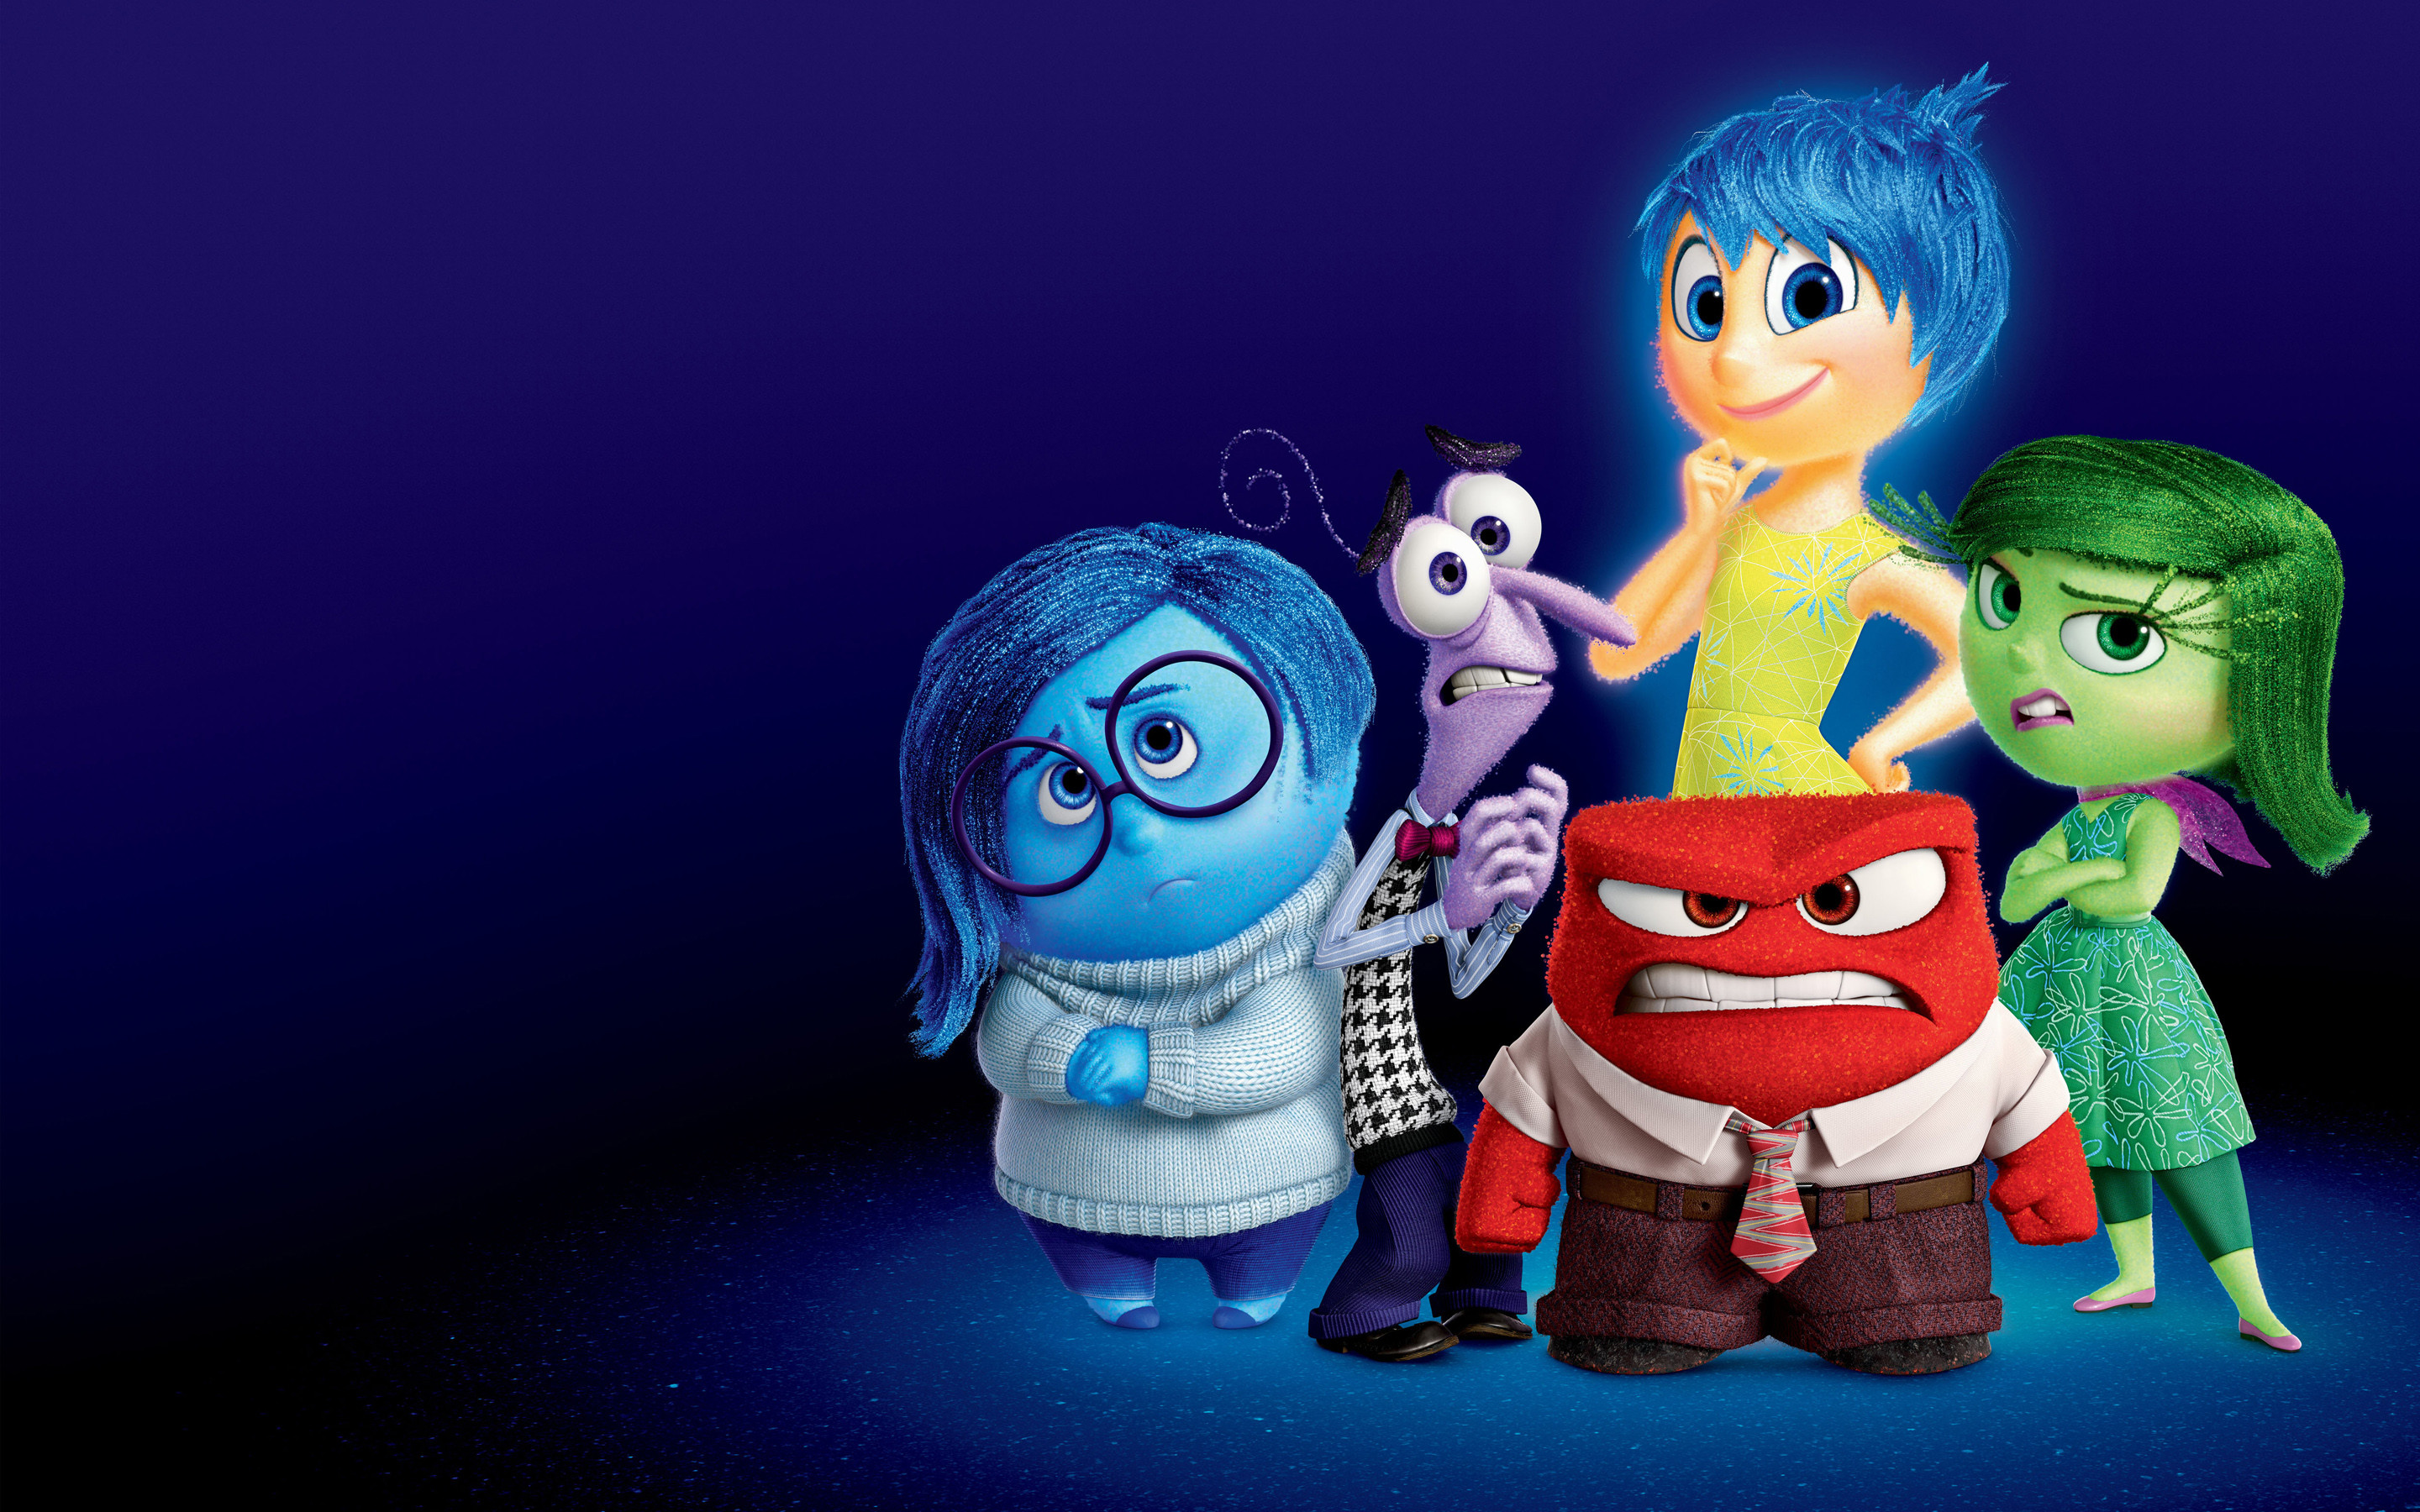 Feelings During Finals Week According To Inside Out